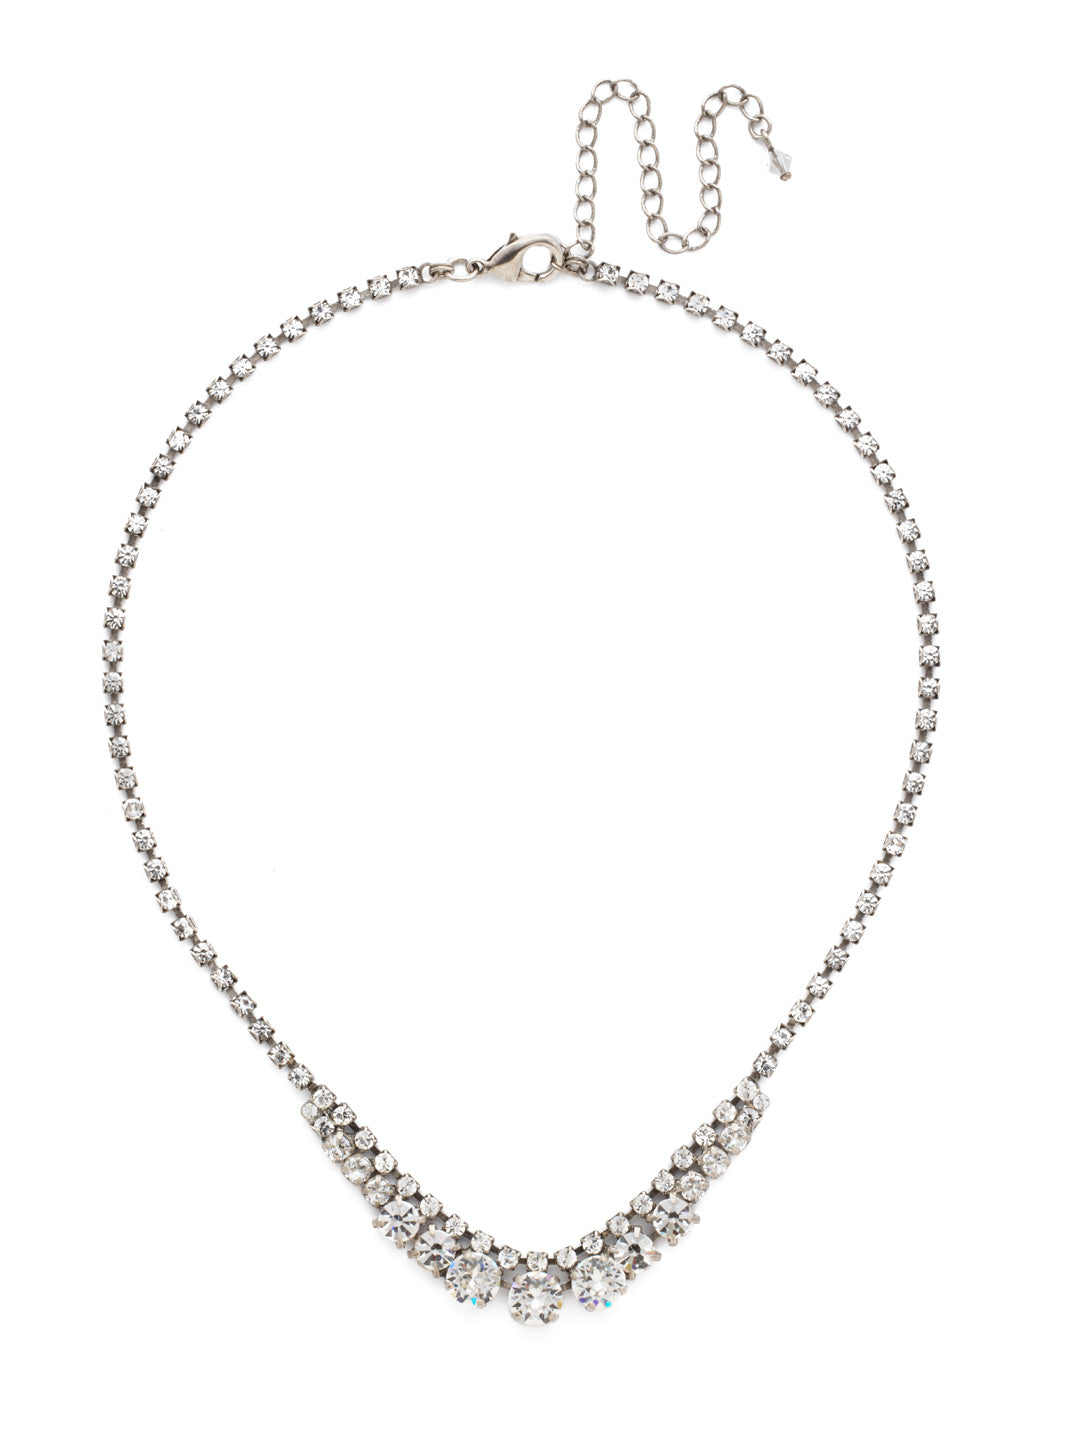 Round and Rhinestone Tennis Necklace - NDA14ASCRY